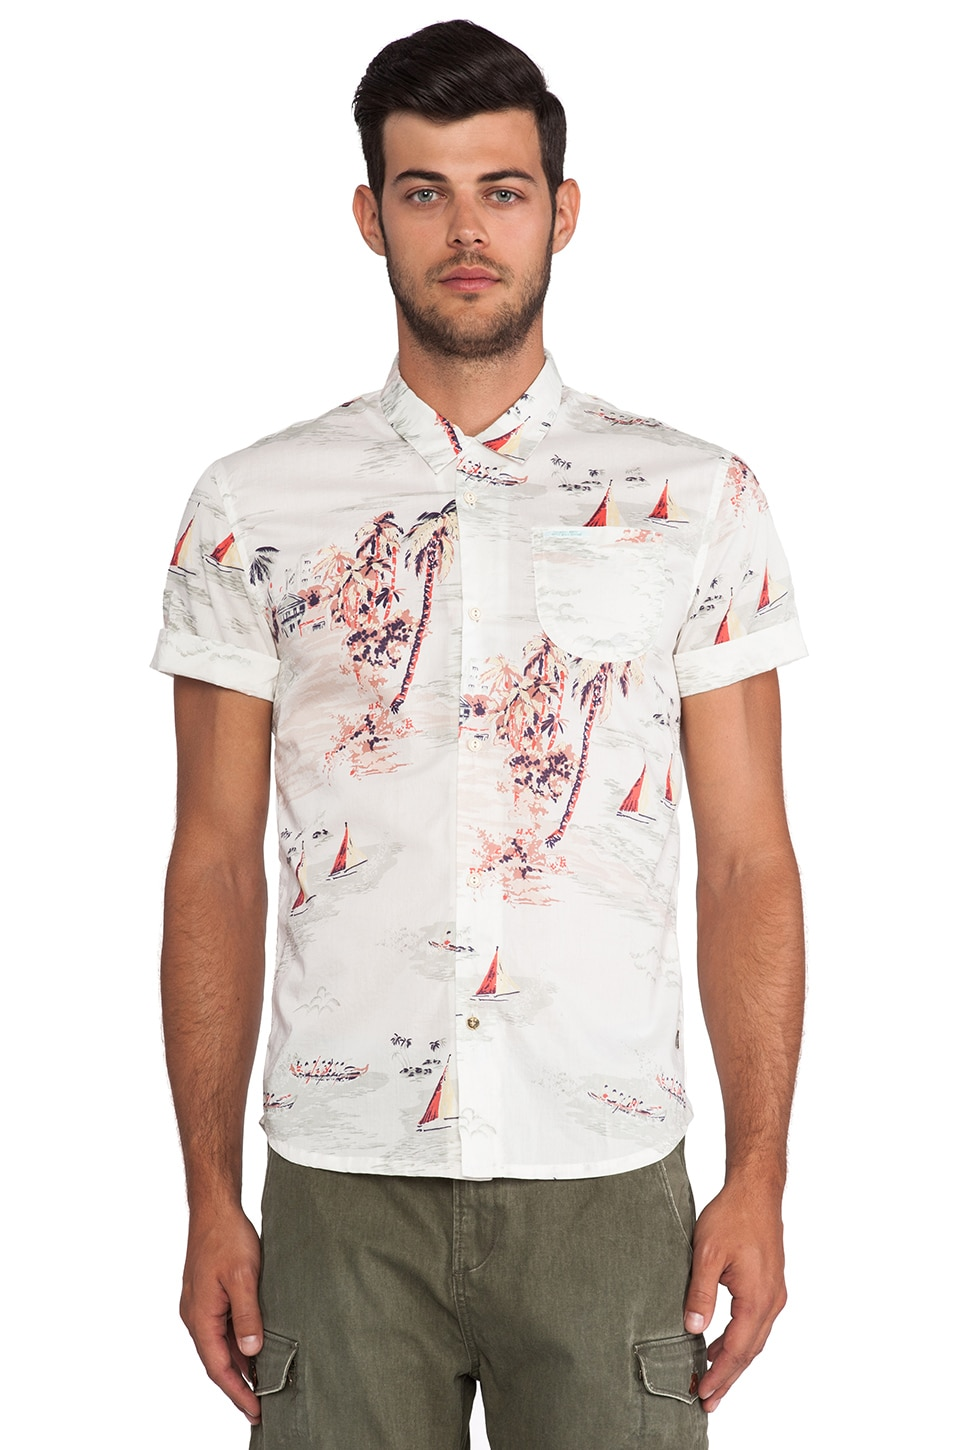 Scotch & Soda Beach Print Shirt in White & Multi